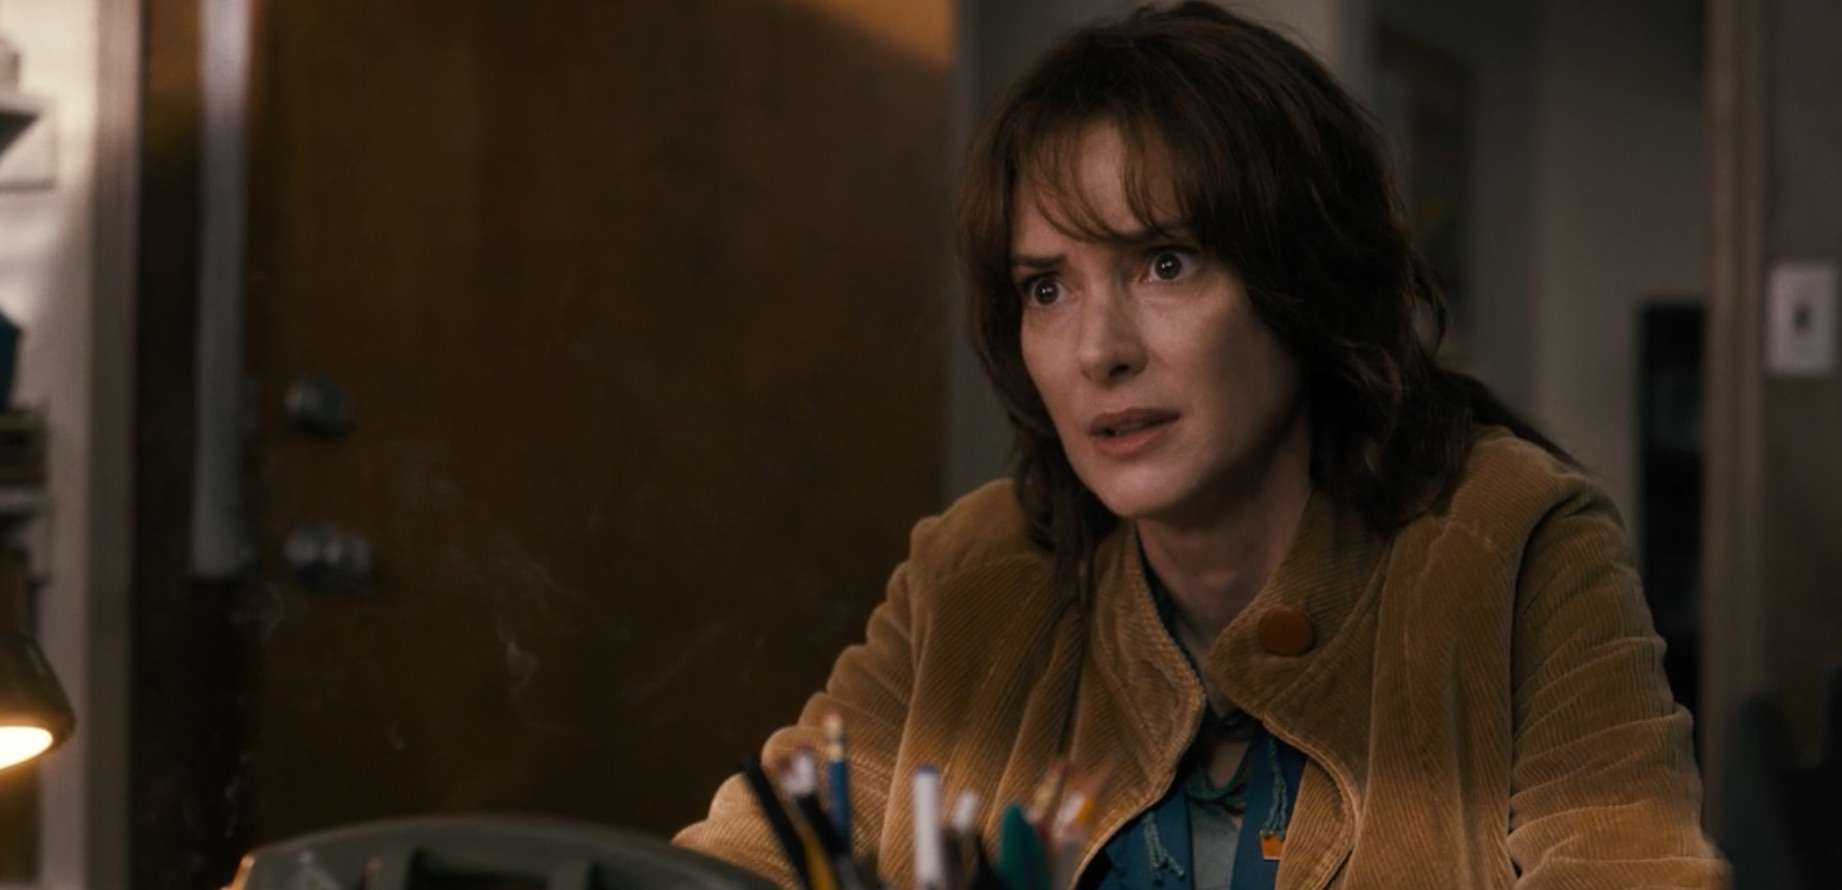 joyce byers, winona ryder, stranger things review